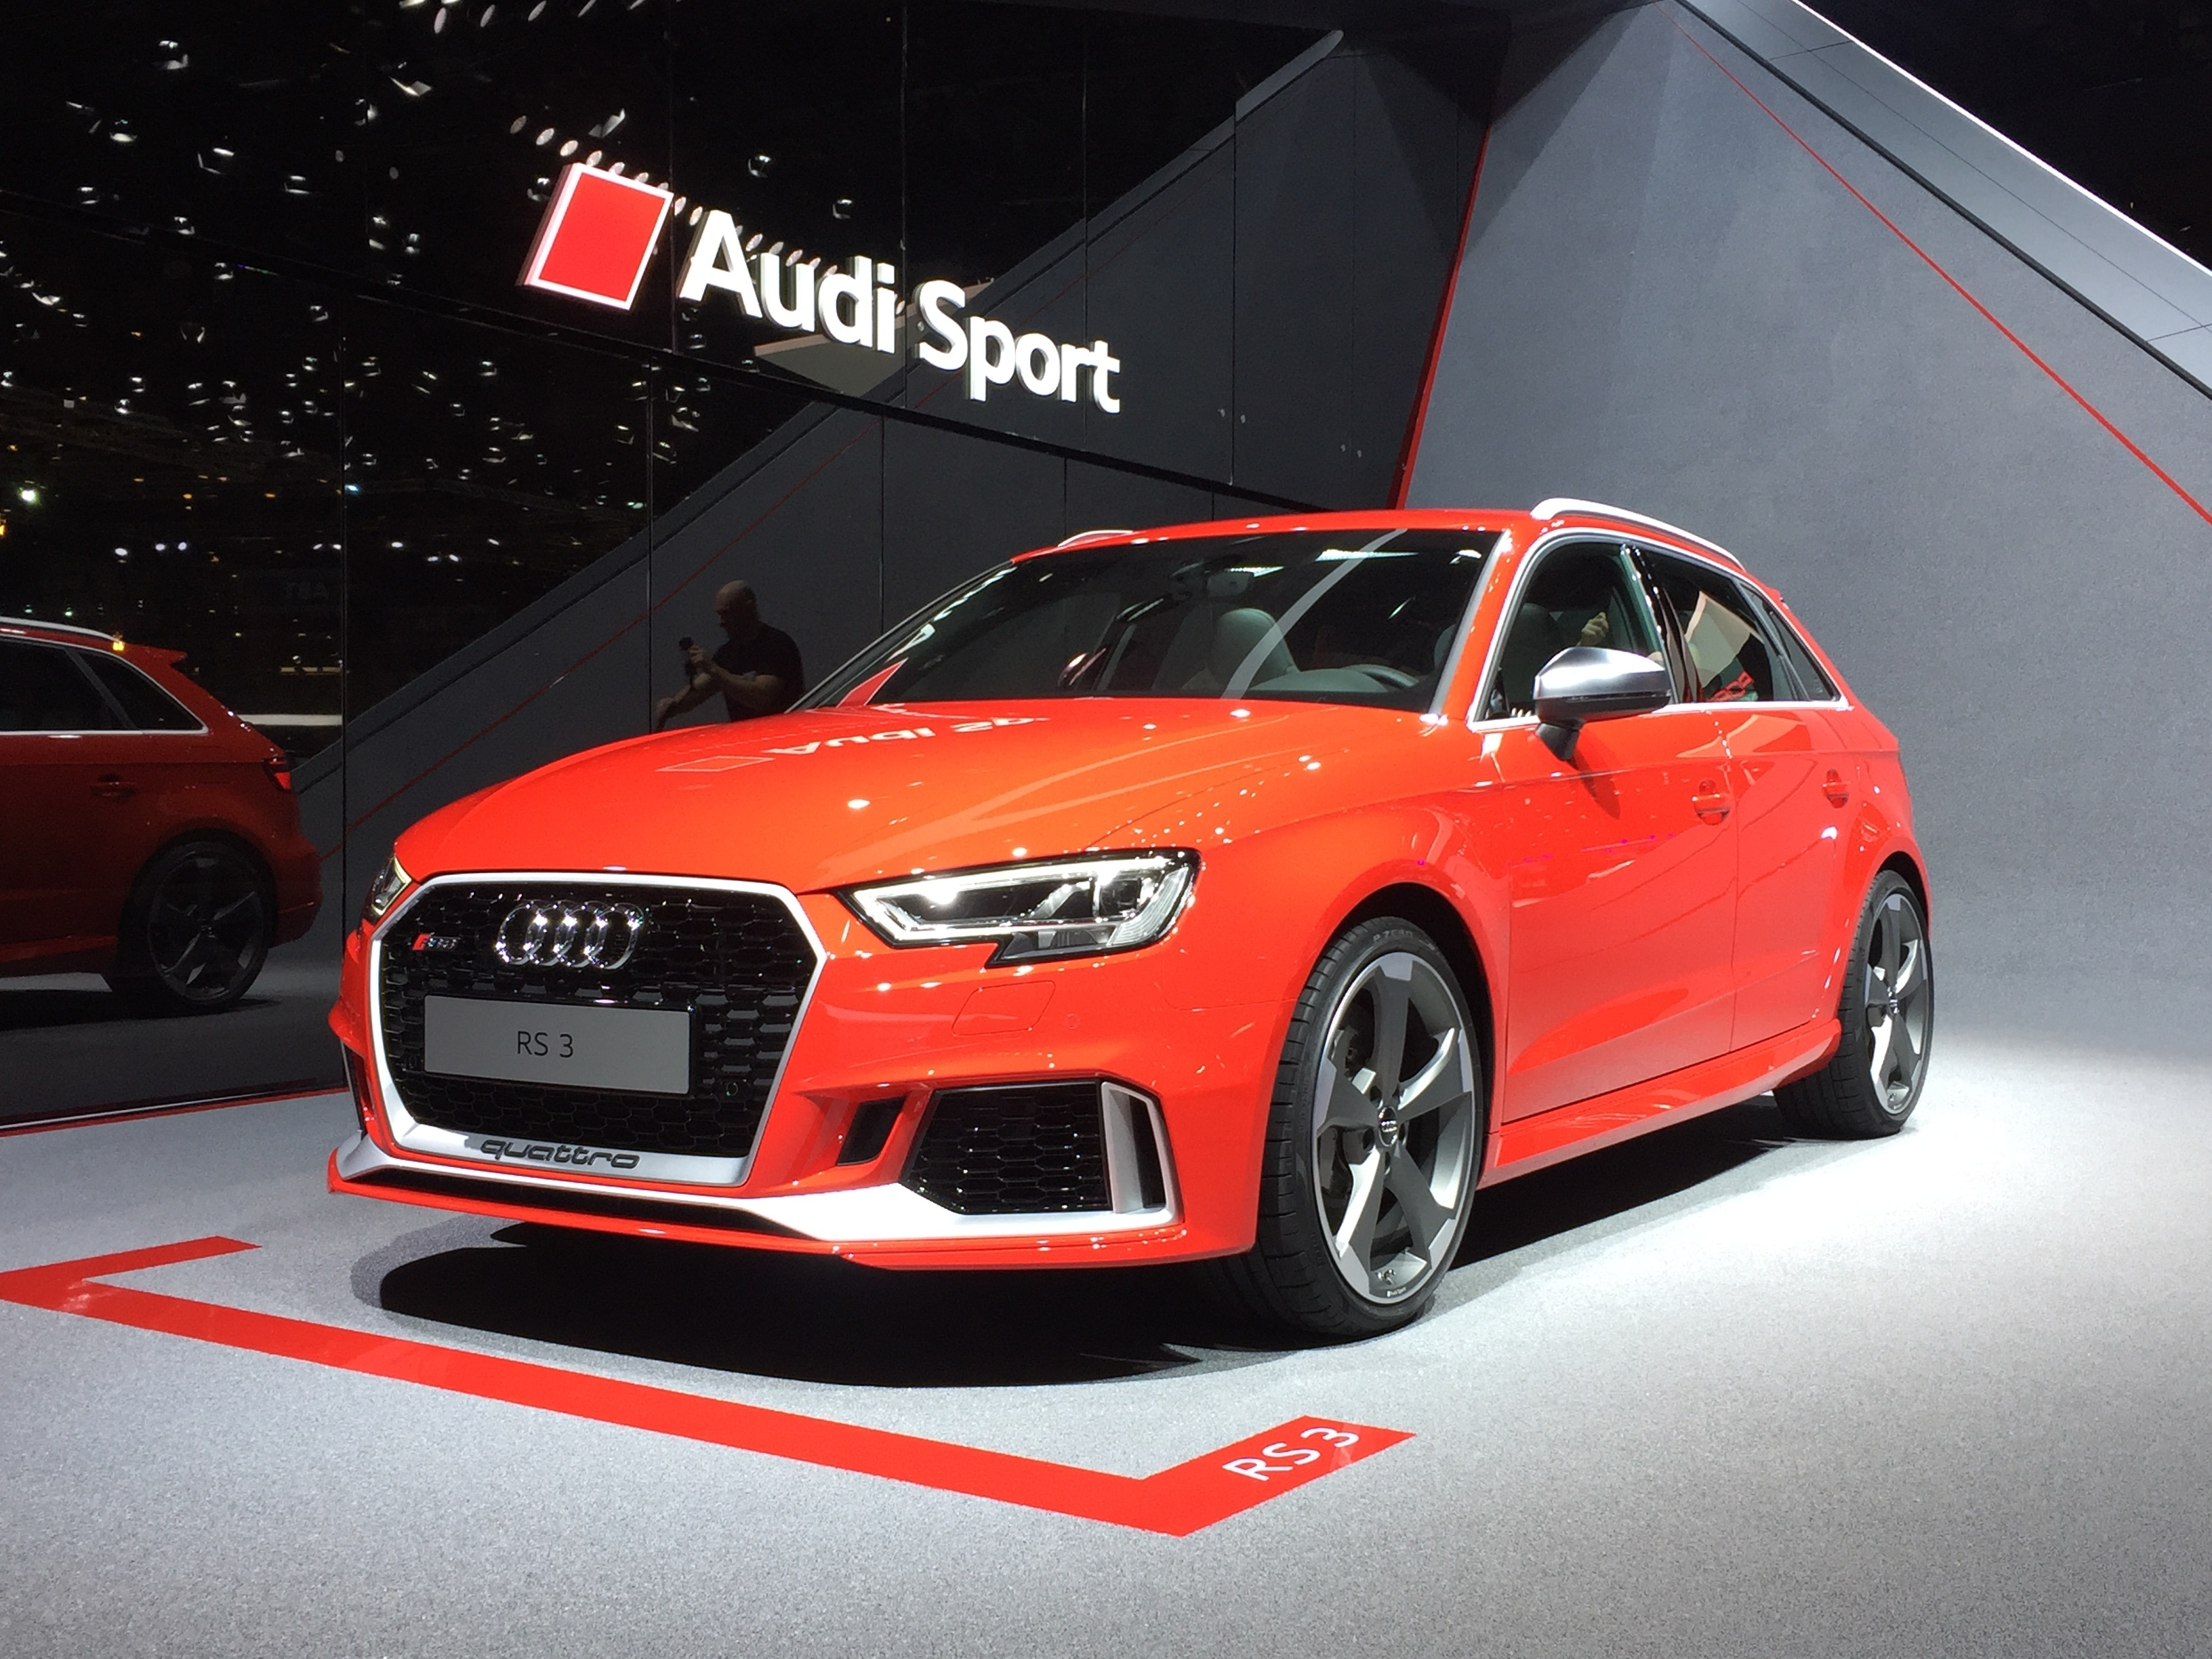 Audi rs 3 sportback 400 ch vid o en direct du salon de for Salon de prostitution geneve